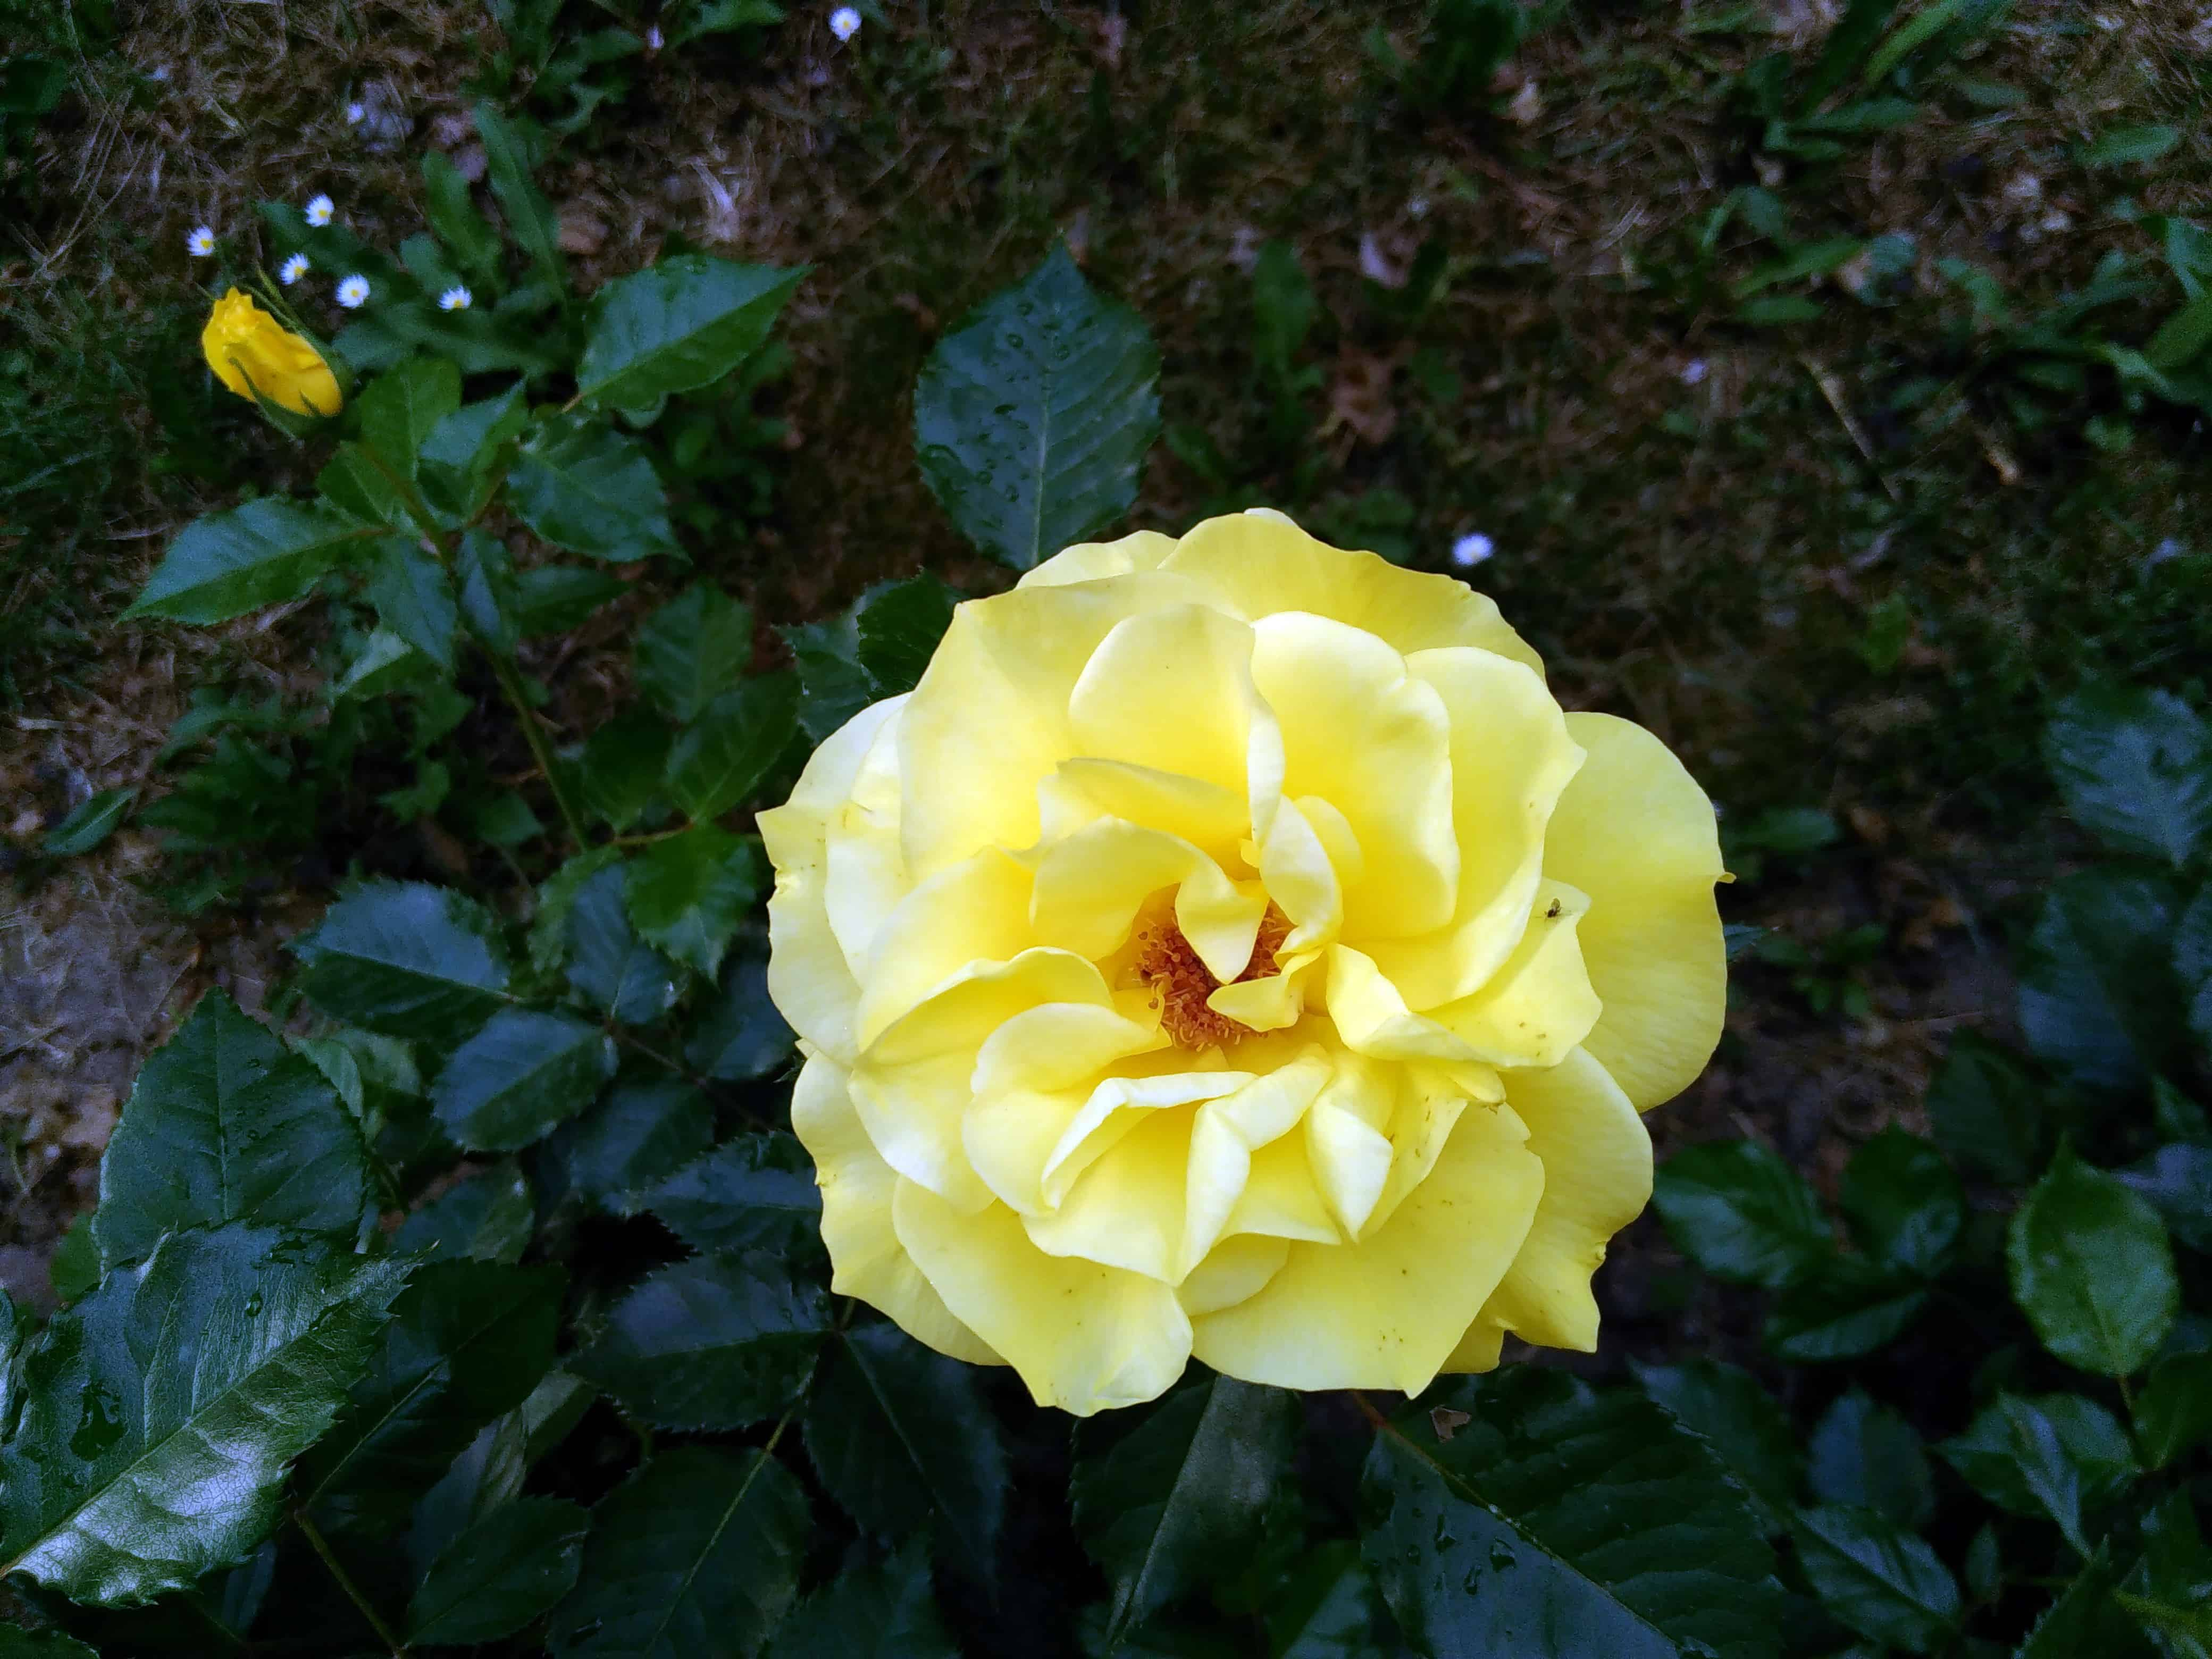 Free picture nature leaf petal flora yellow flower garden nature leaf petal flora yellow flower garden rose plant bloom mightylinksfo